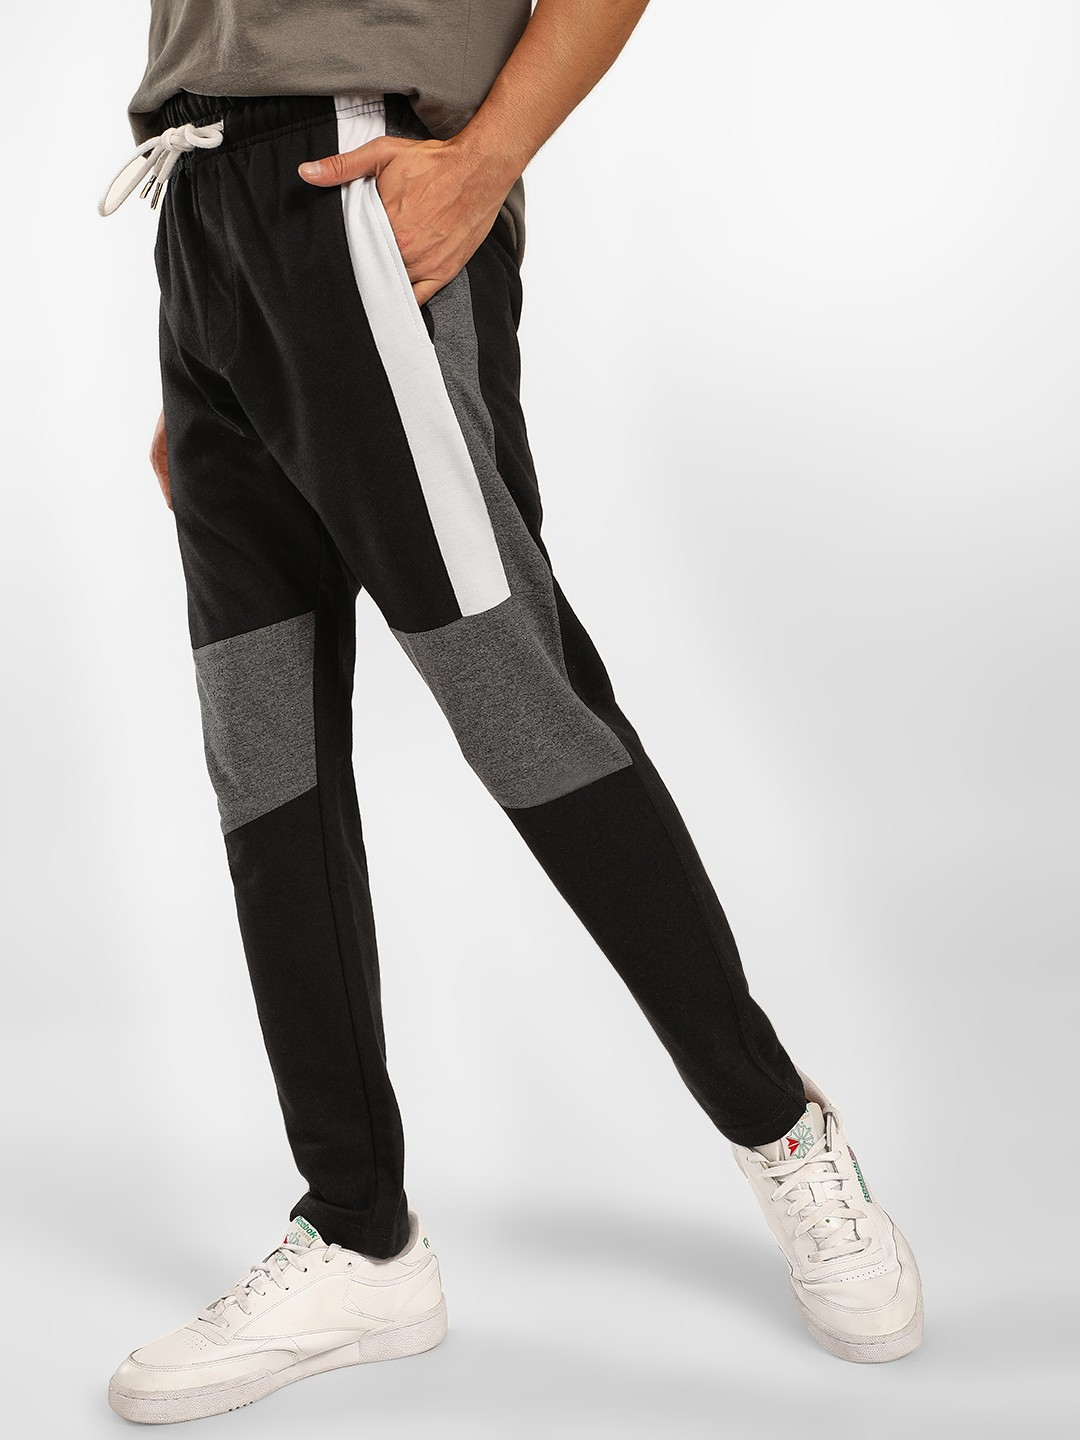 SKULT By Shahid Kapoor Black Side Tape Colour Block Track Pants 1